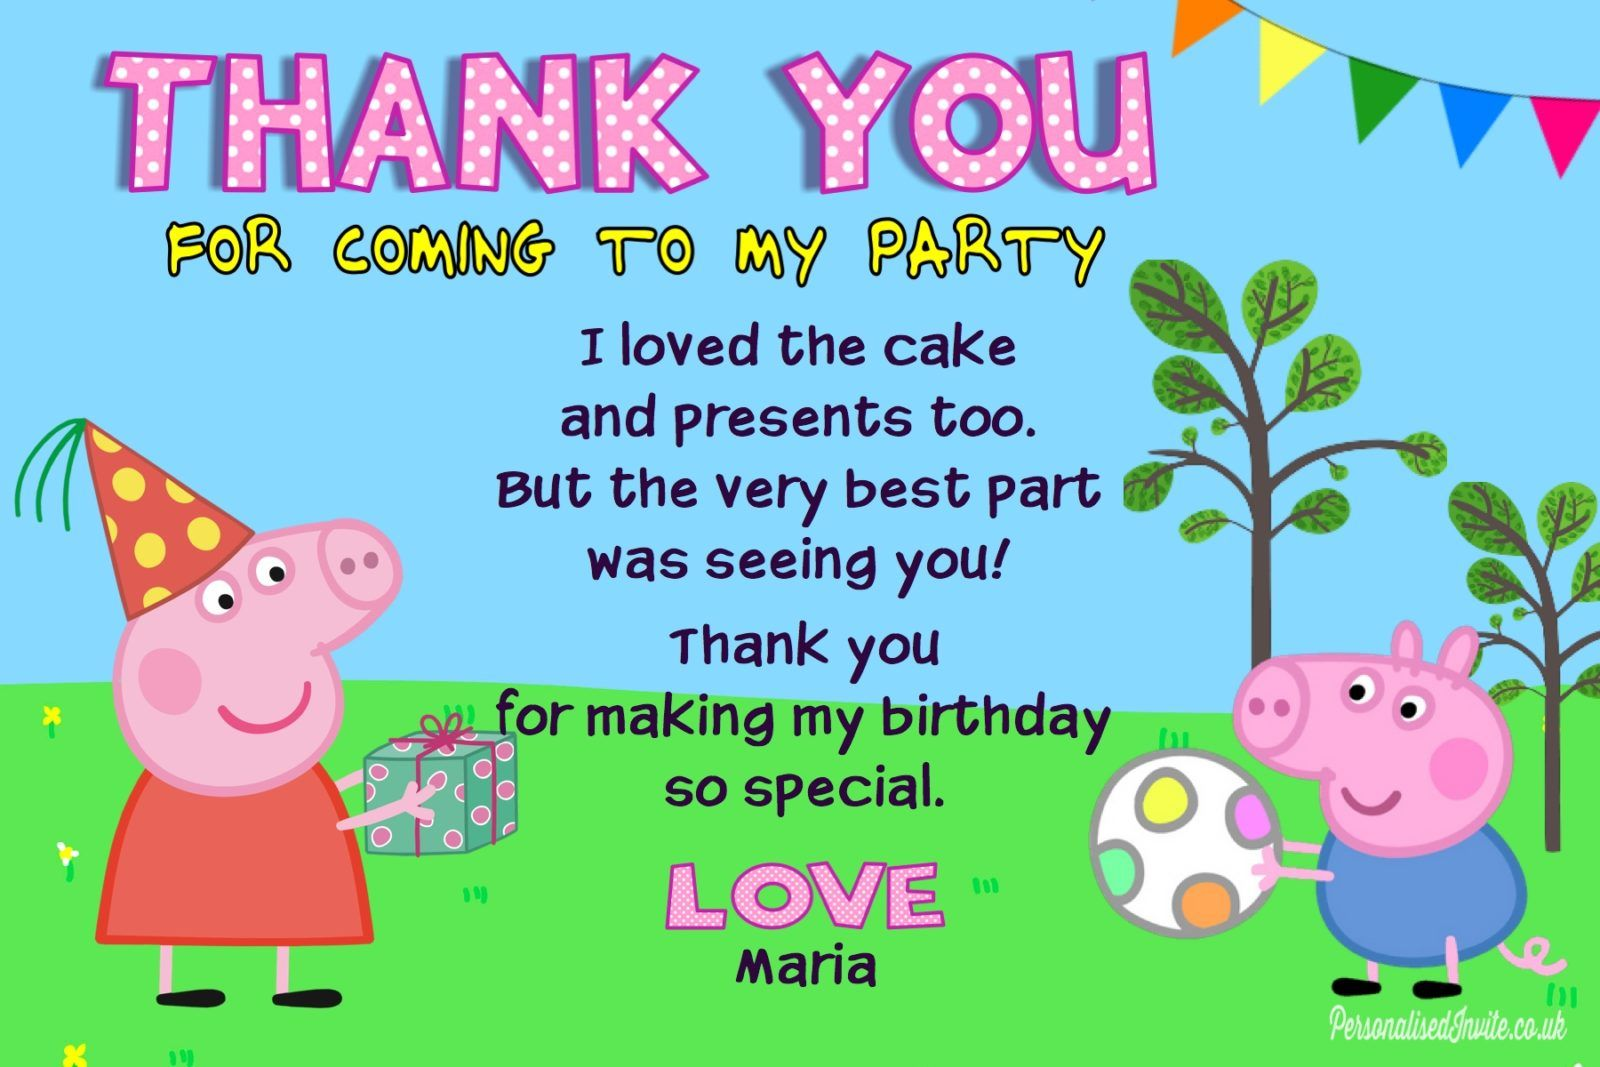 Birthday Invitations And Thank You Cards Birthday Thank You Cards New Design Birthday Thank You Cards Thank You Cards From Kids Birthday Thank You